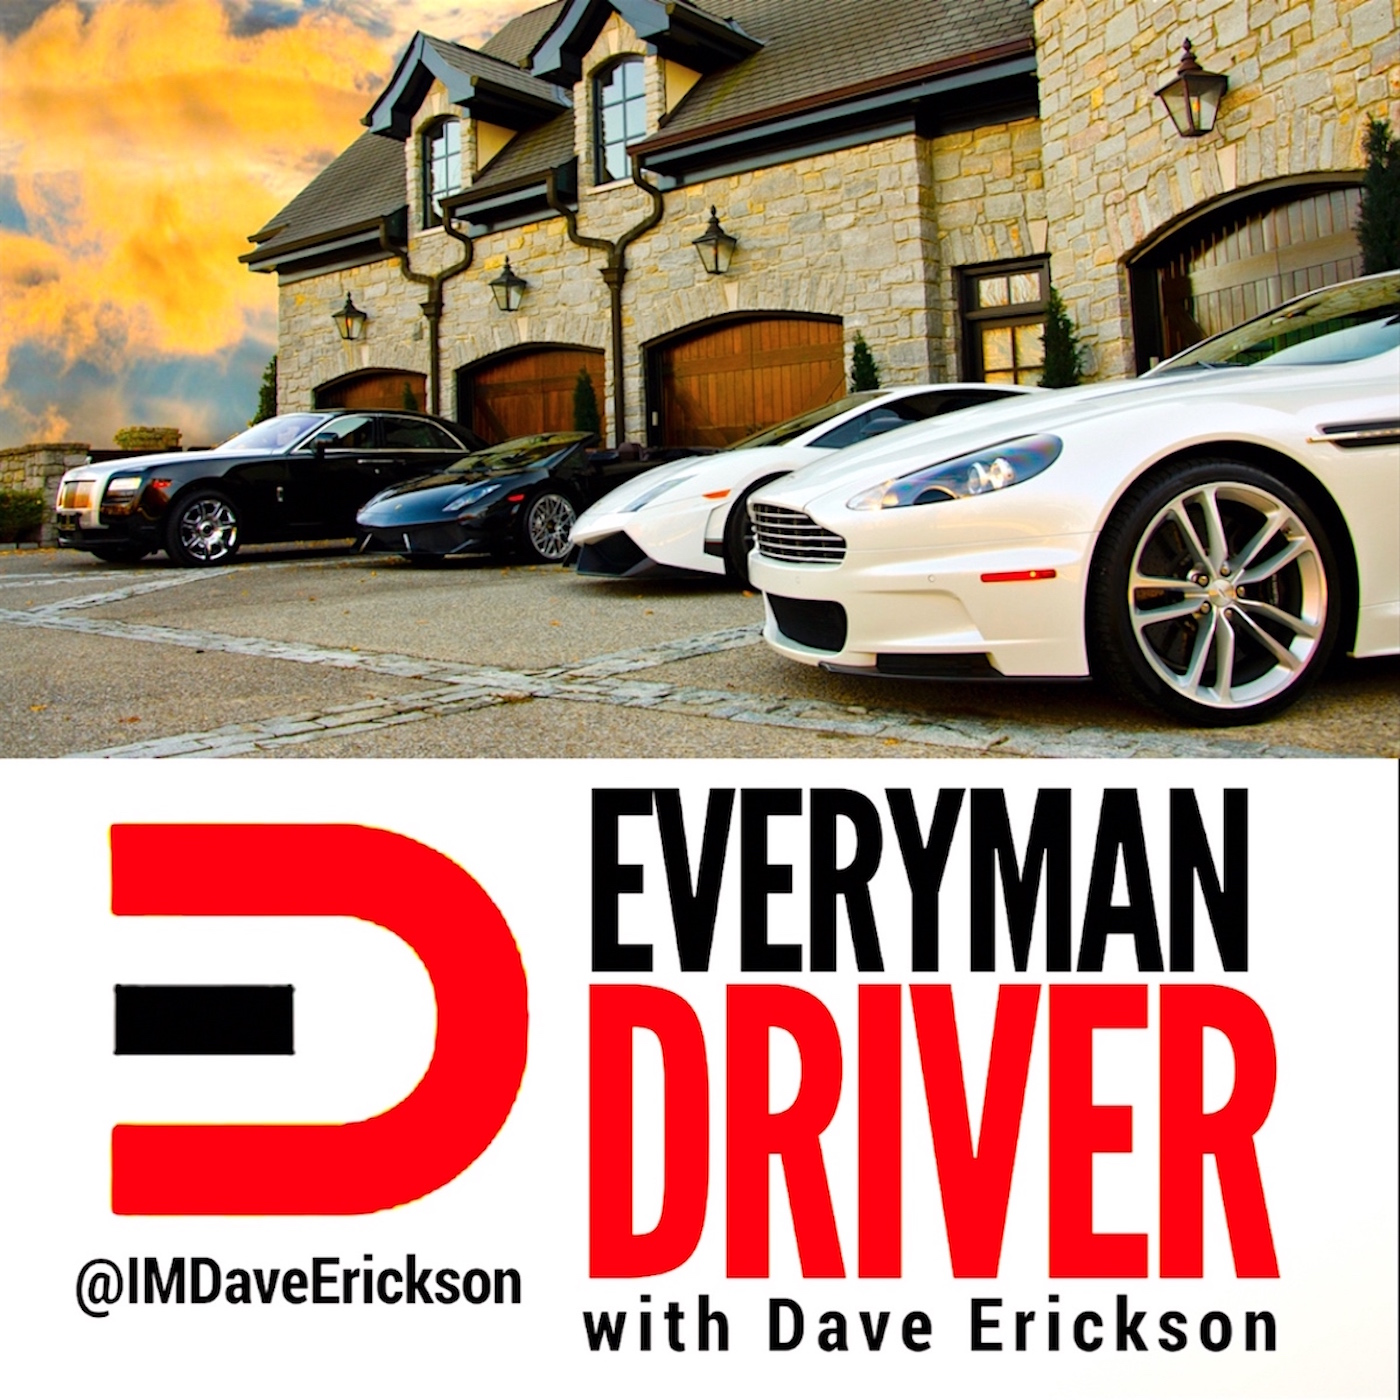 Everyman Driver Car Show